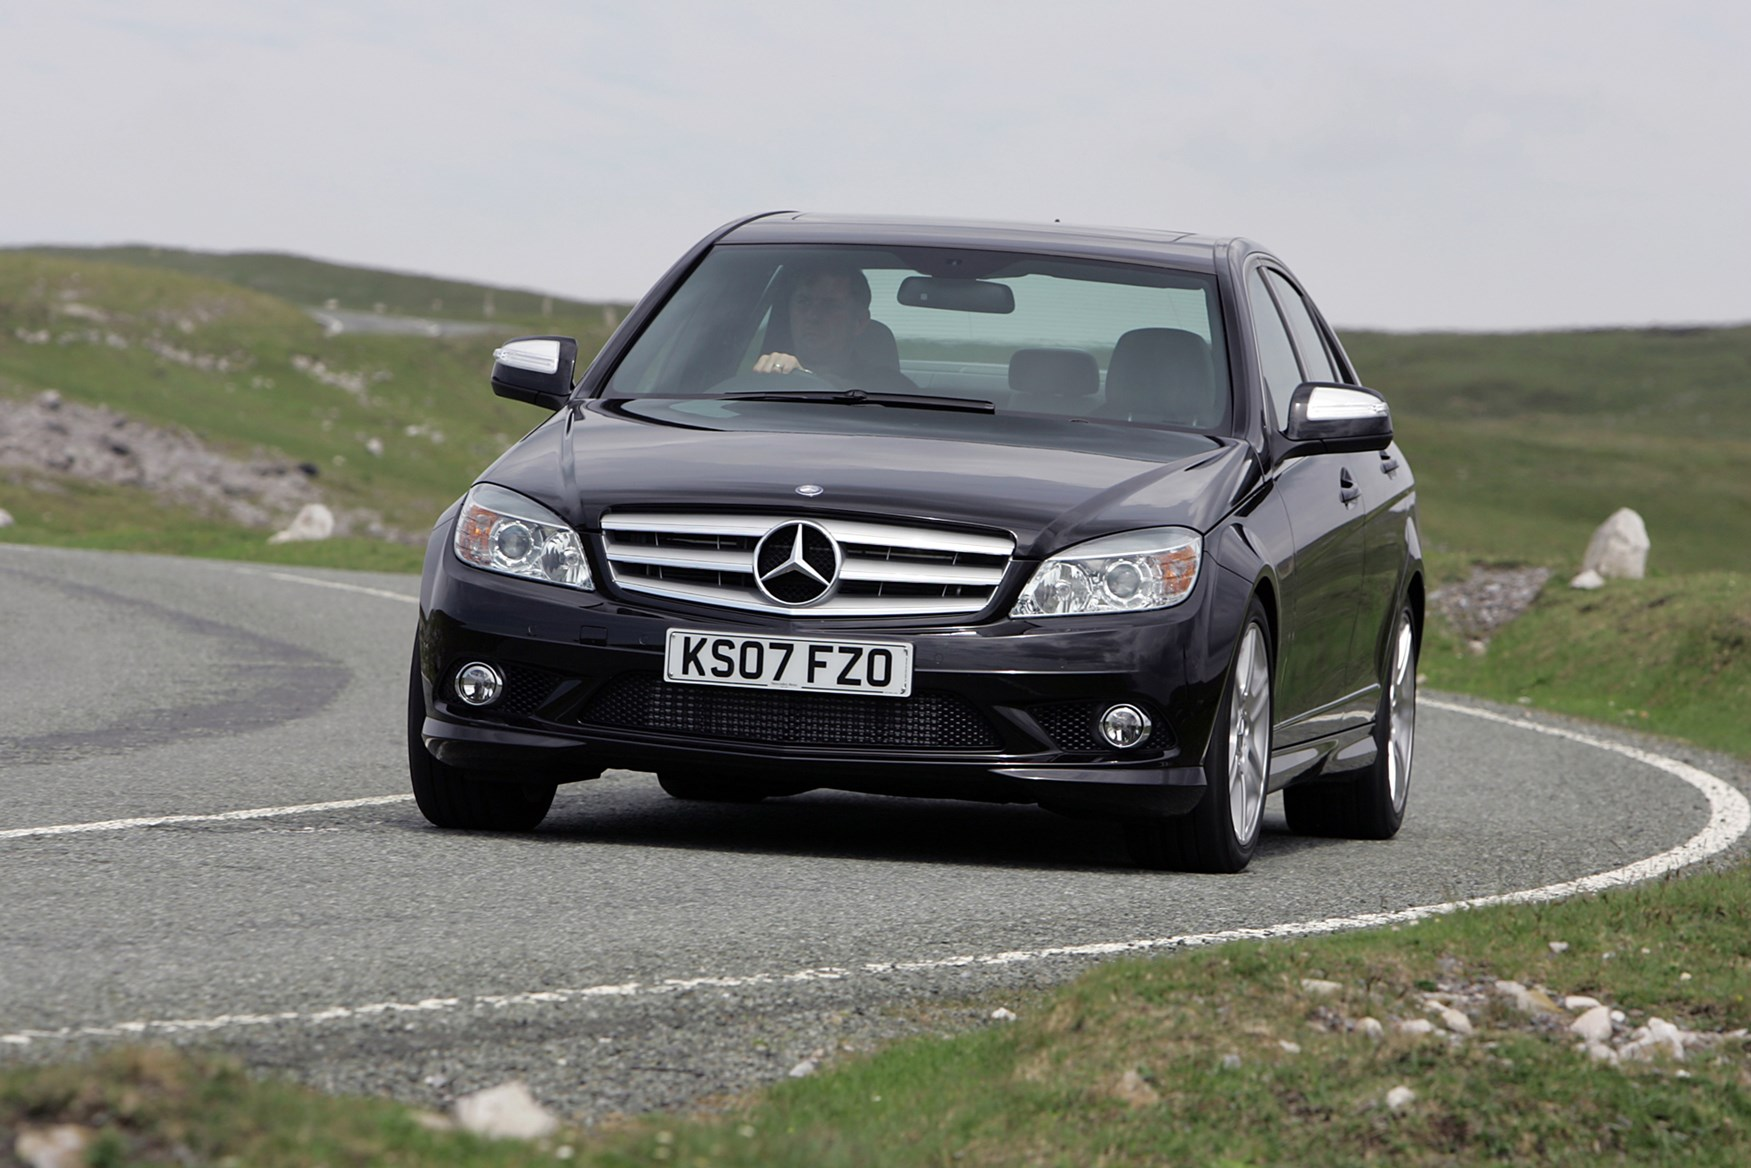 Used Mercedes-Benz C-Class Saloon (2007 - 2014) Practicality | Parkers